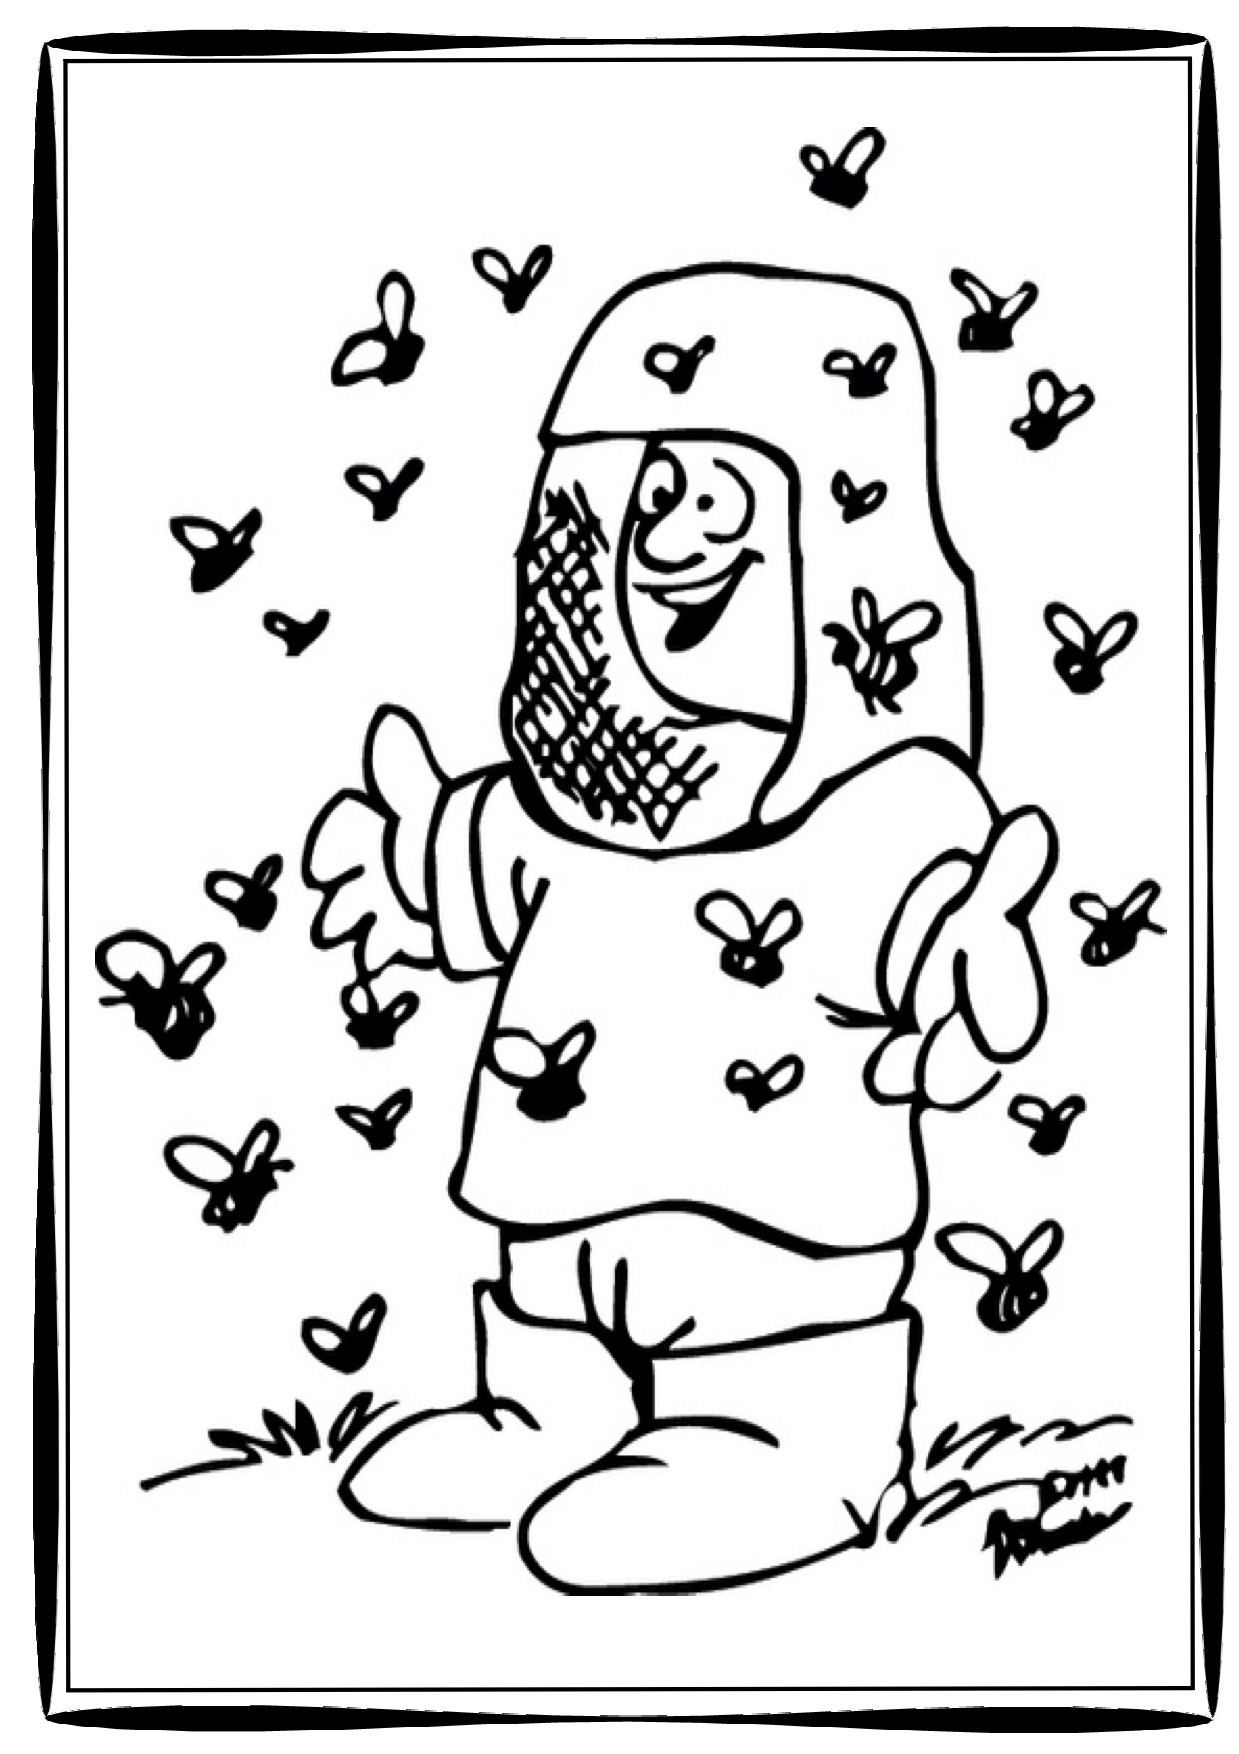 Beehive Coloring Page At Getcolorings